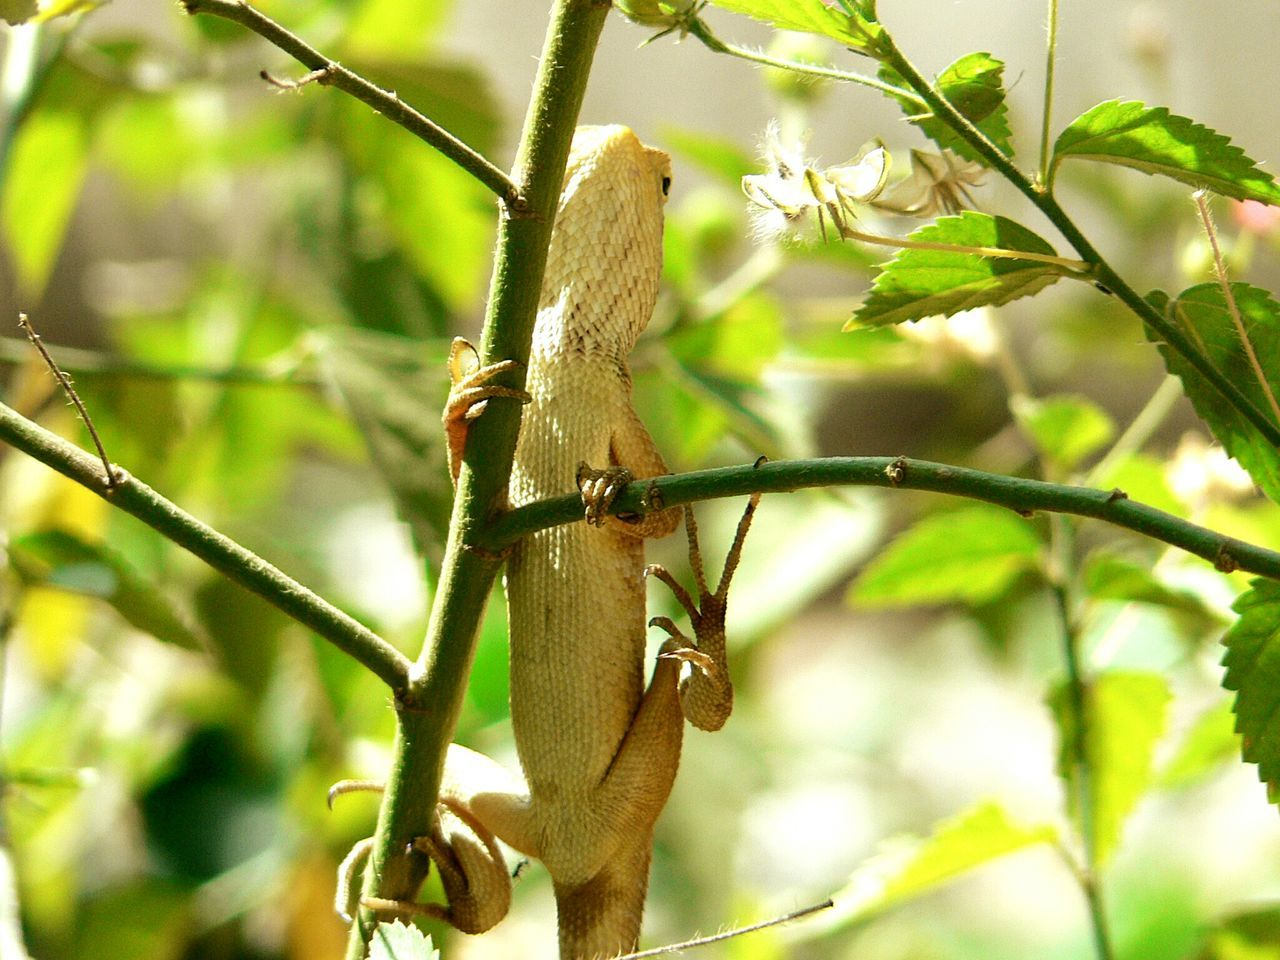 Lizard Watching In The Garden Garden Lizard Lizard Nature Repltile Cold Blooded Sun Bathing EyeEm Best Shots EyeEm Nature Lover EyeEmBestPics Eyeen Gallery EyeEm Best Shots - Nature EyeEm Best Edits Eyeem Lizards The Lizard Hannging From The Tree Hanging Climbimg A Tree Lizardporn Lizard Love The Lizard Madness